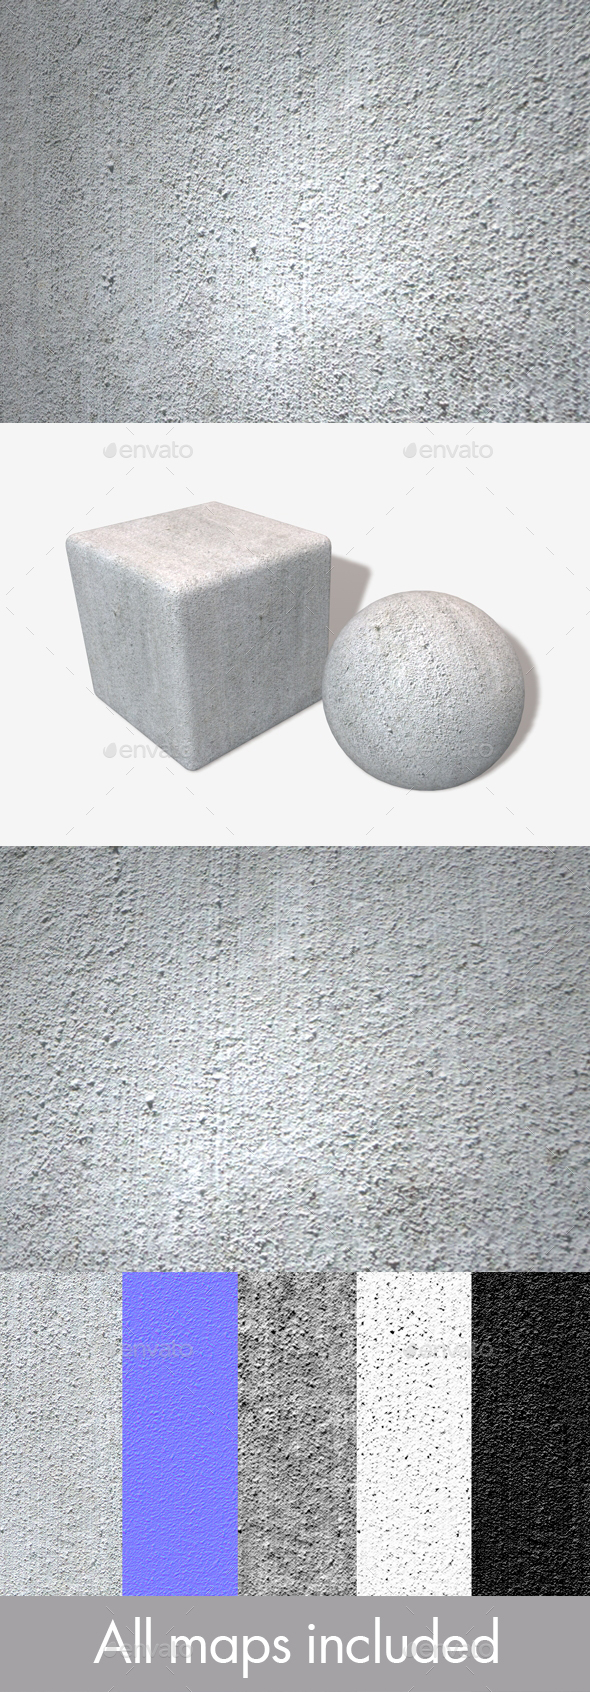 Rough Industrial White Wall Seamless Texture - 3DOcean Item for Sale